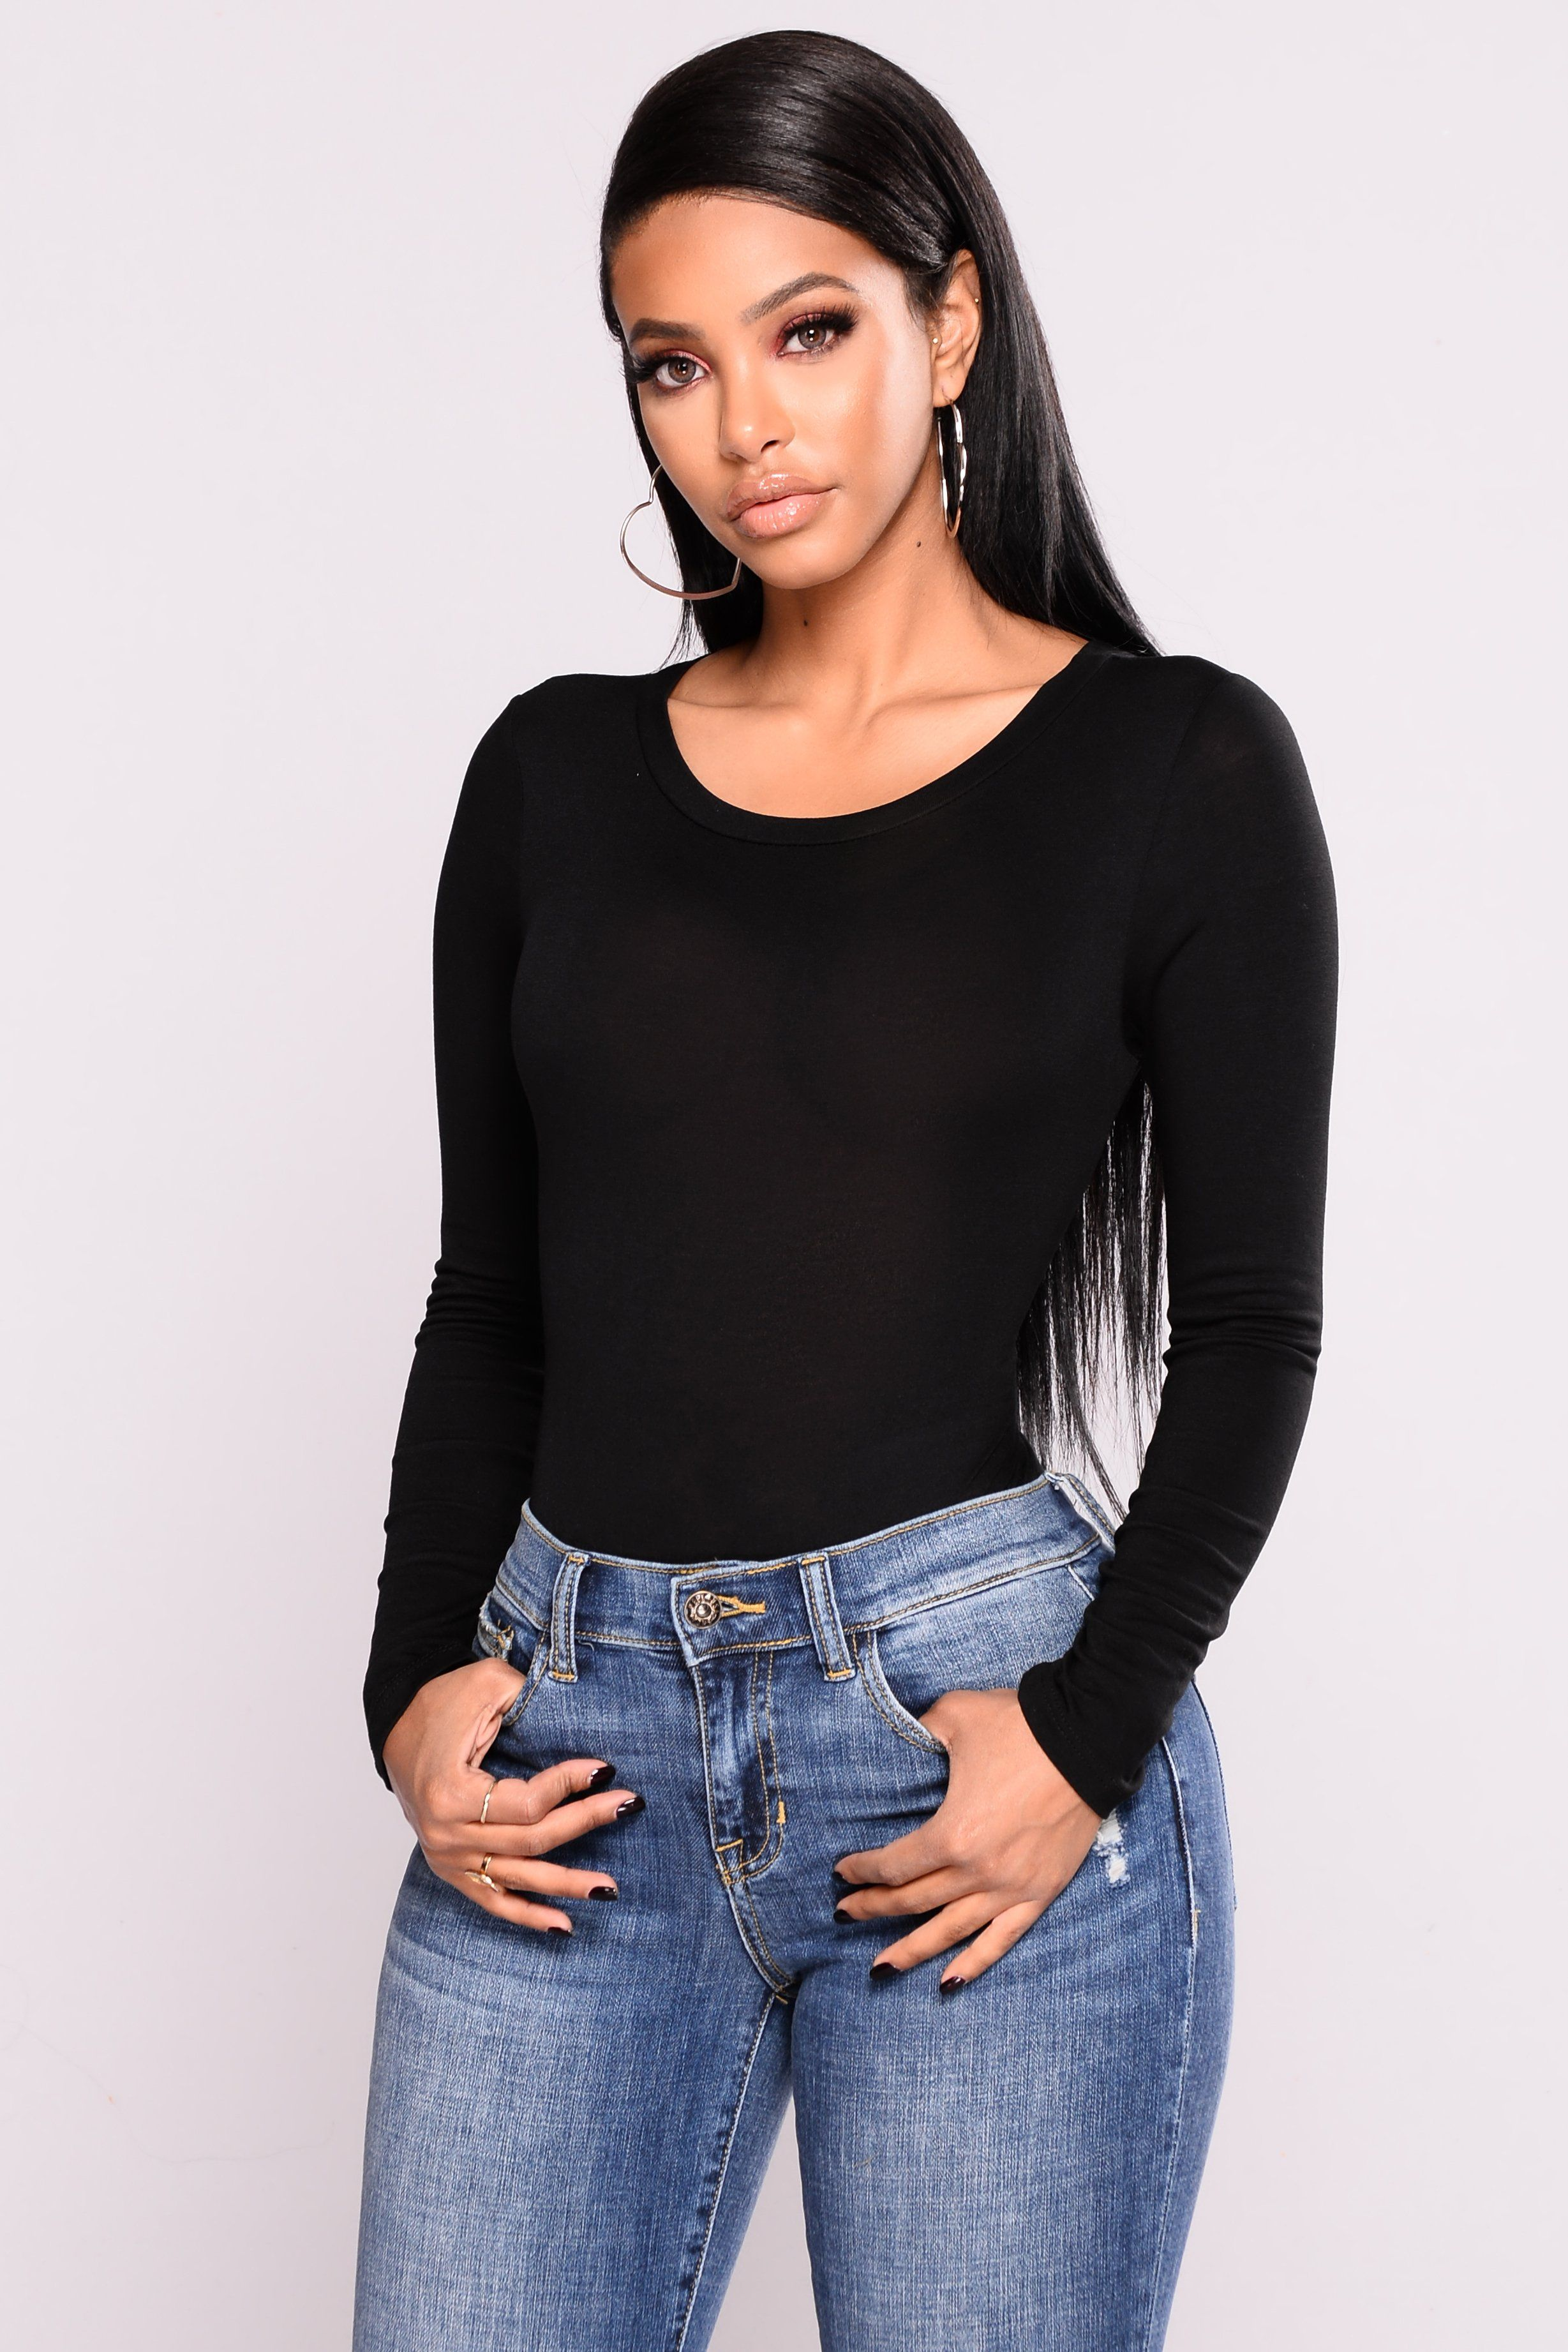 c3ceca4ef978fe Available in Black, and Ivory T- Shirt Bodysuit Round Neckline Long Sleeve  Cheeky Bottom Snap Button Bottom Made in USA 95% Rayon 5% Spandex Final Sale